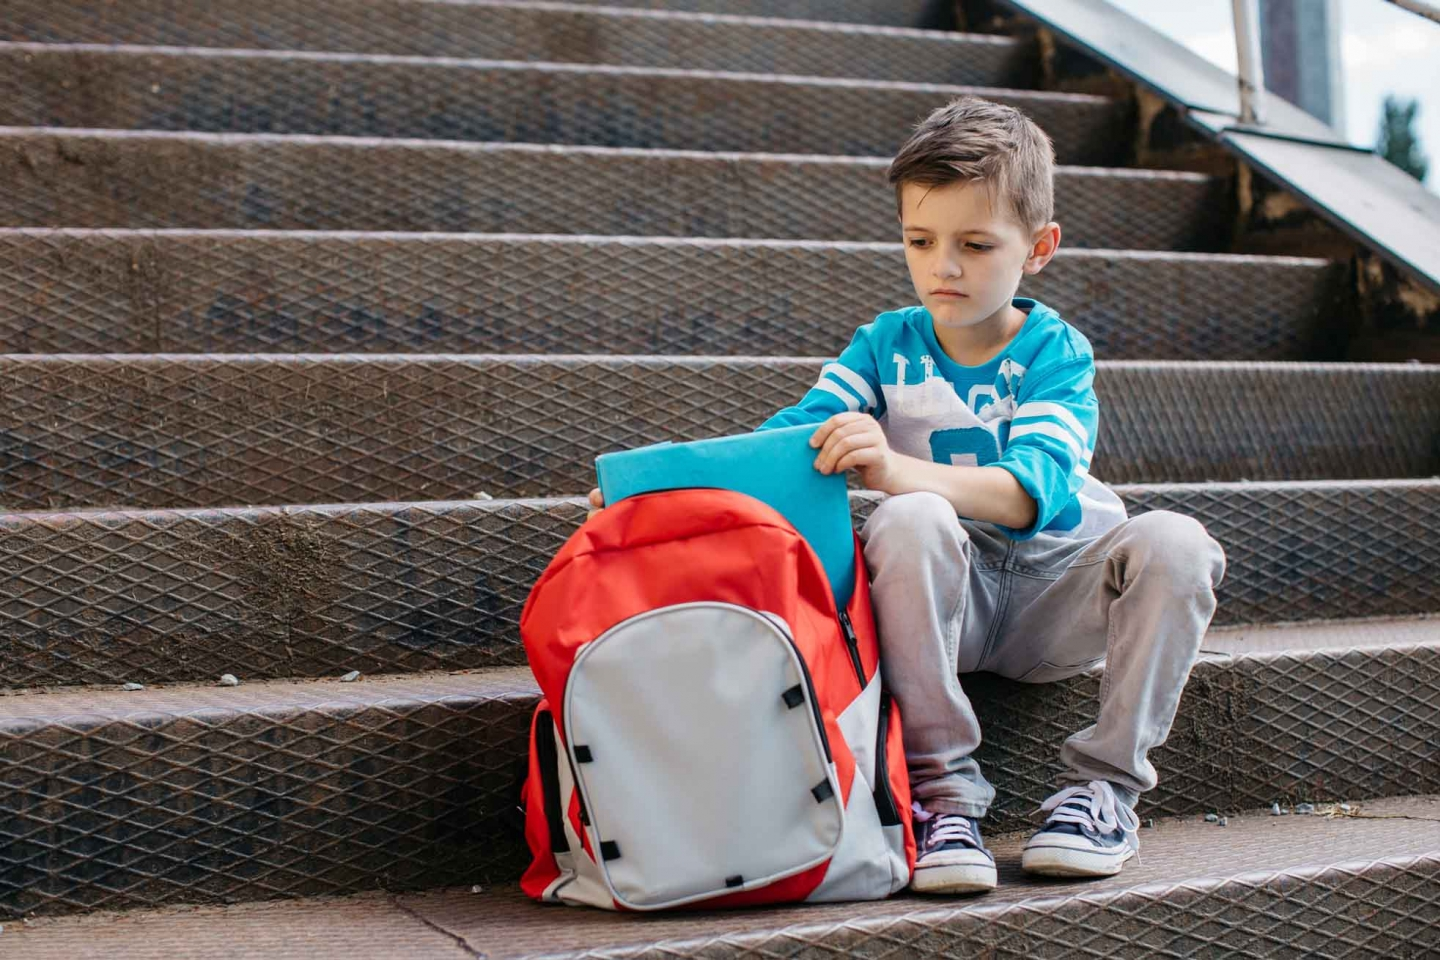 Sad young boy sitting on steps with backpack